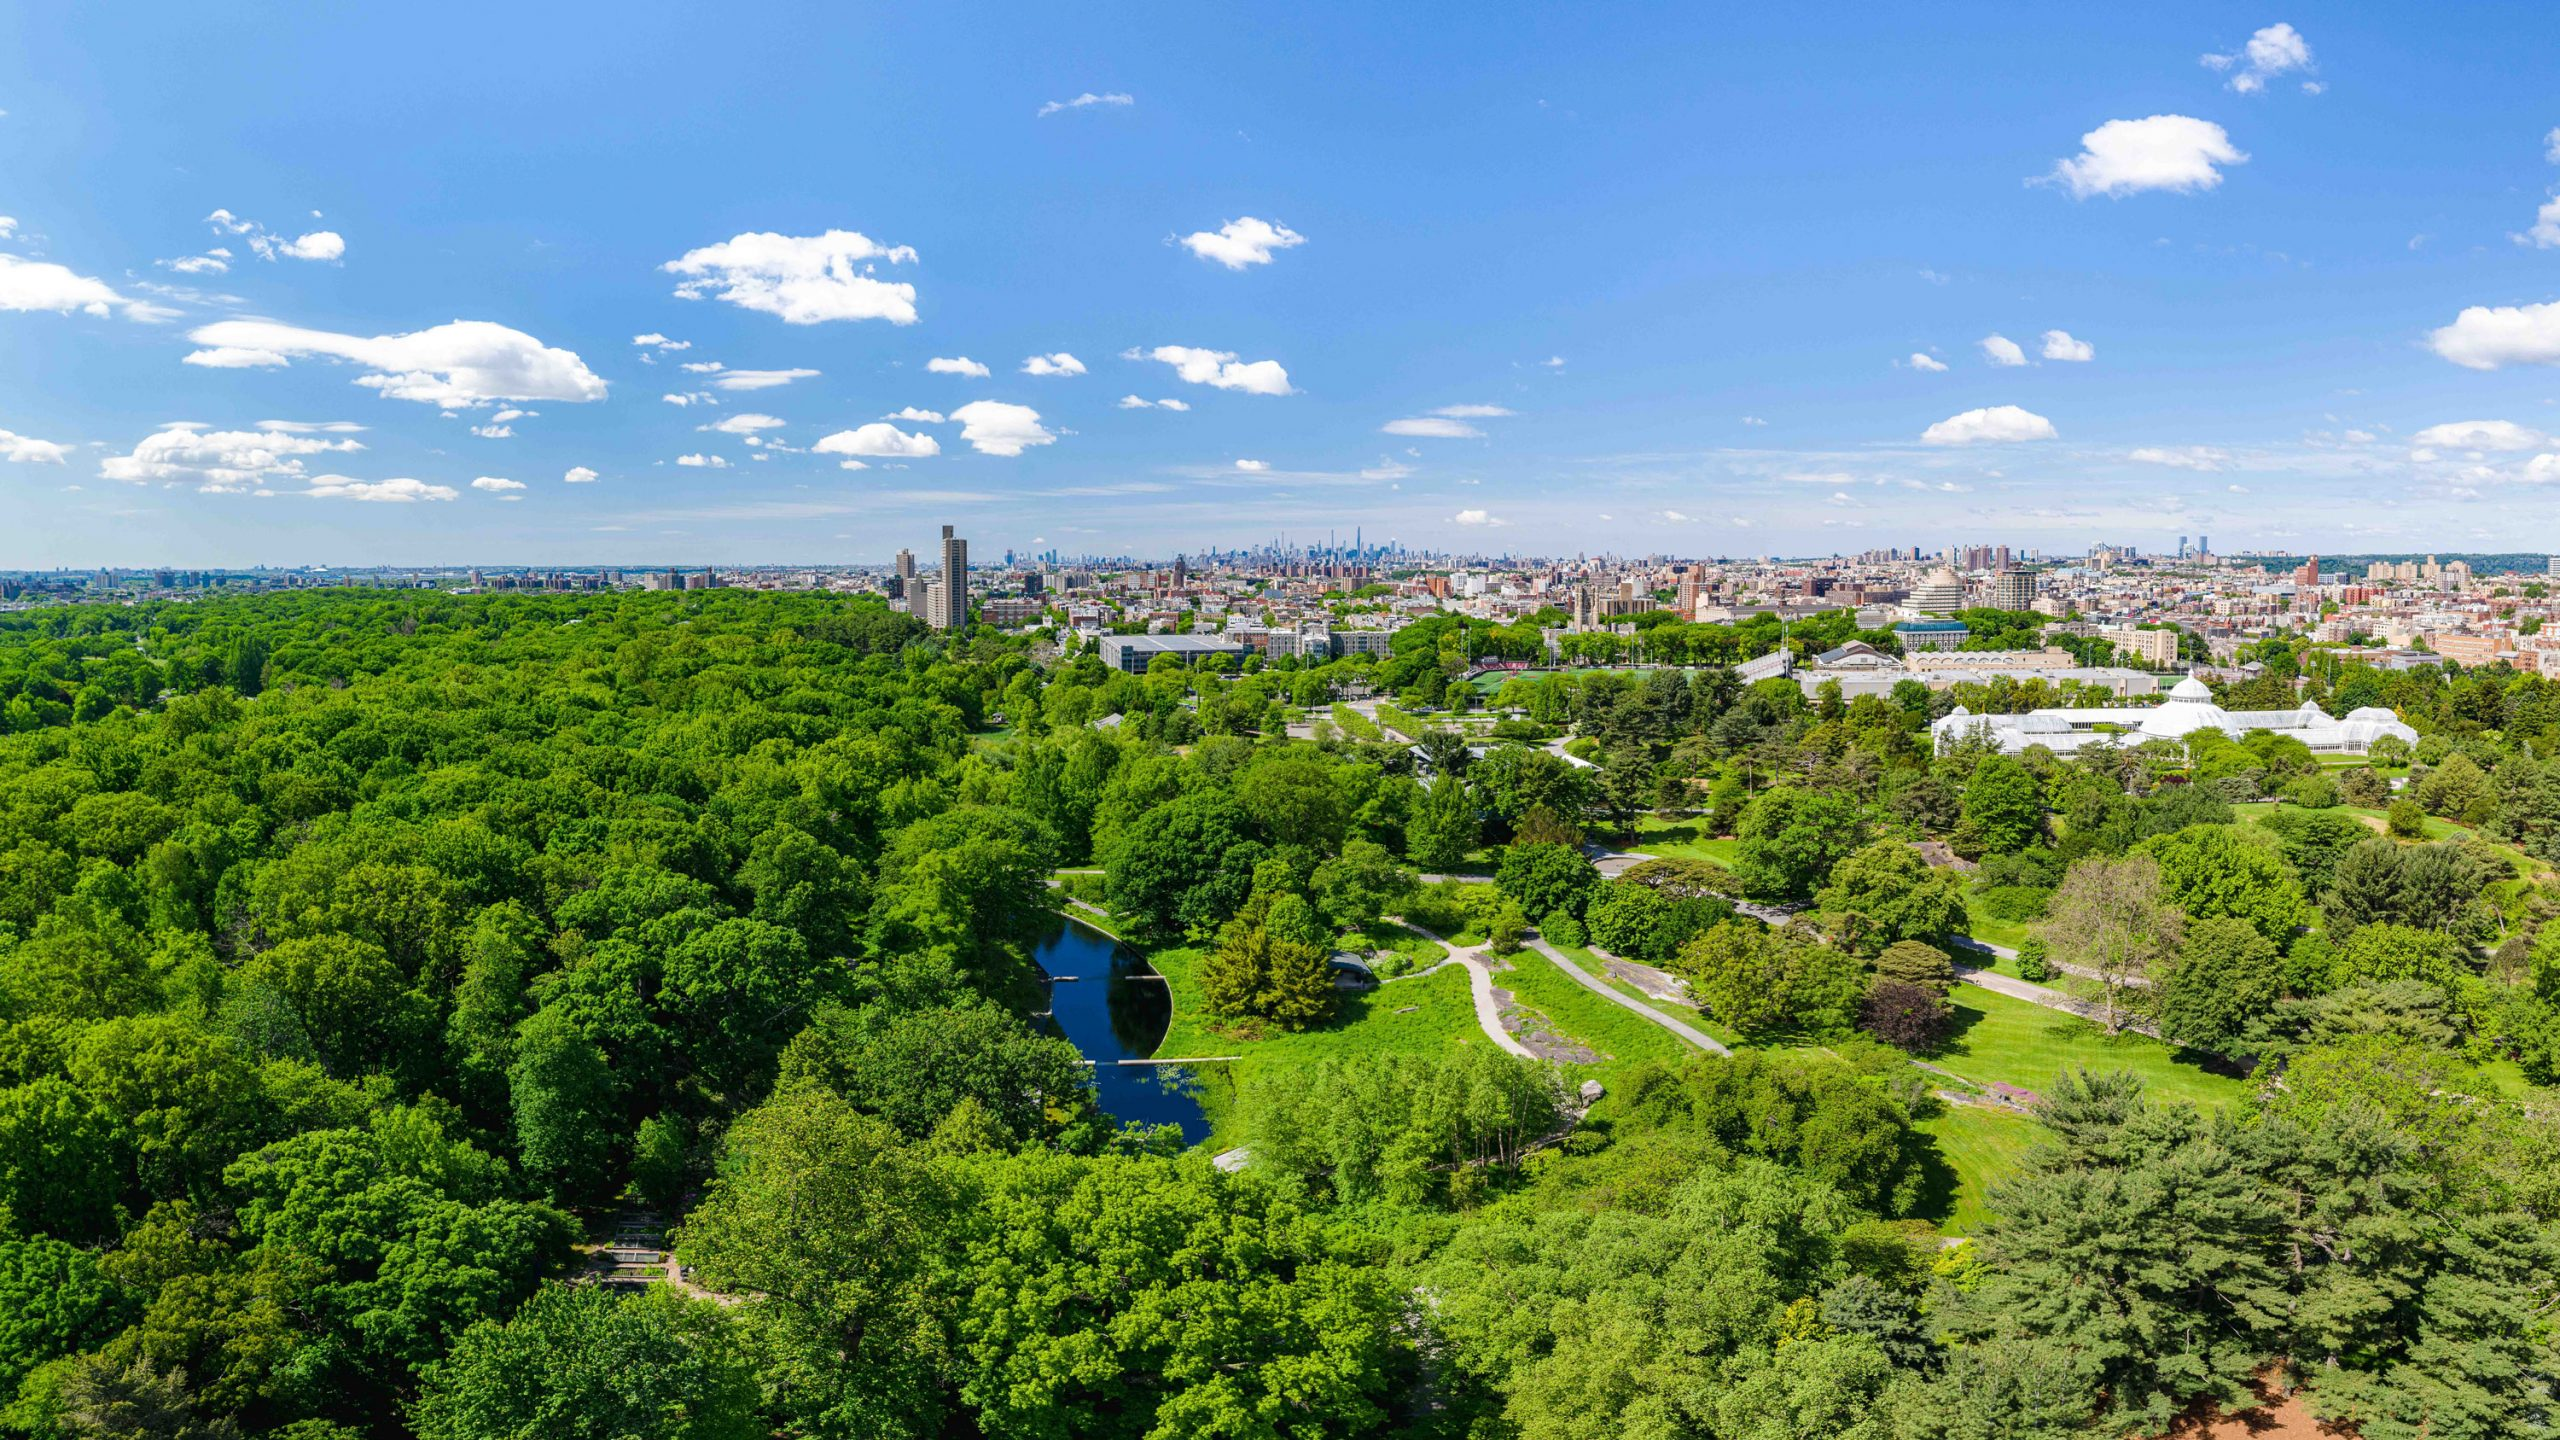 An aerial view of the Garden, with the Conservatory and the Bronx skyline off in the distance.